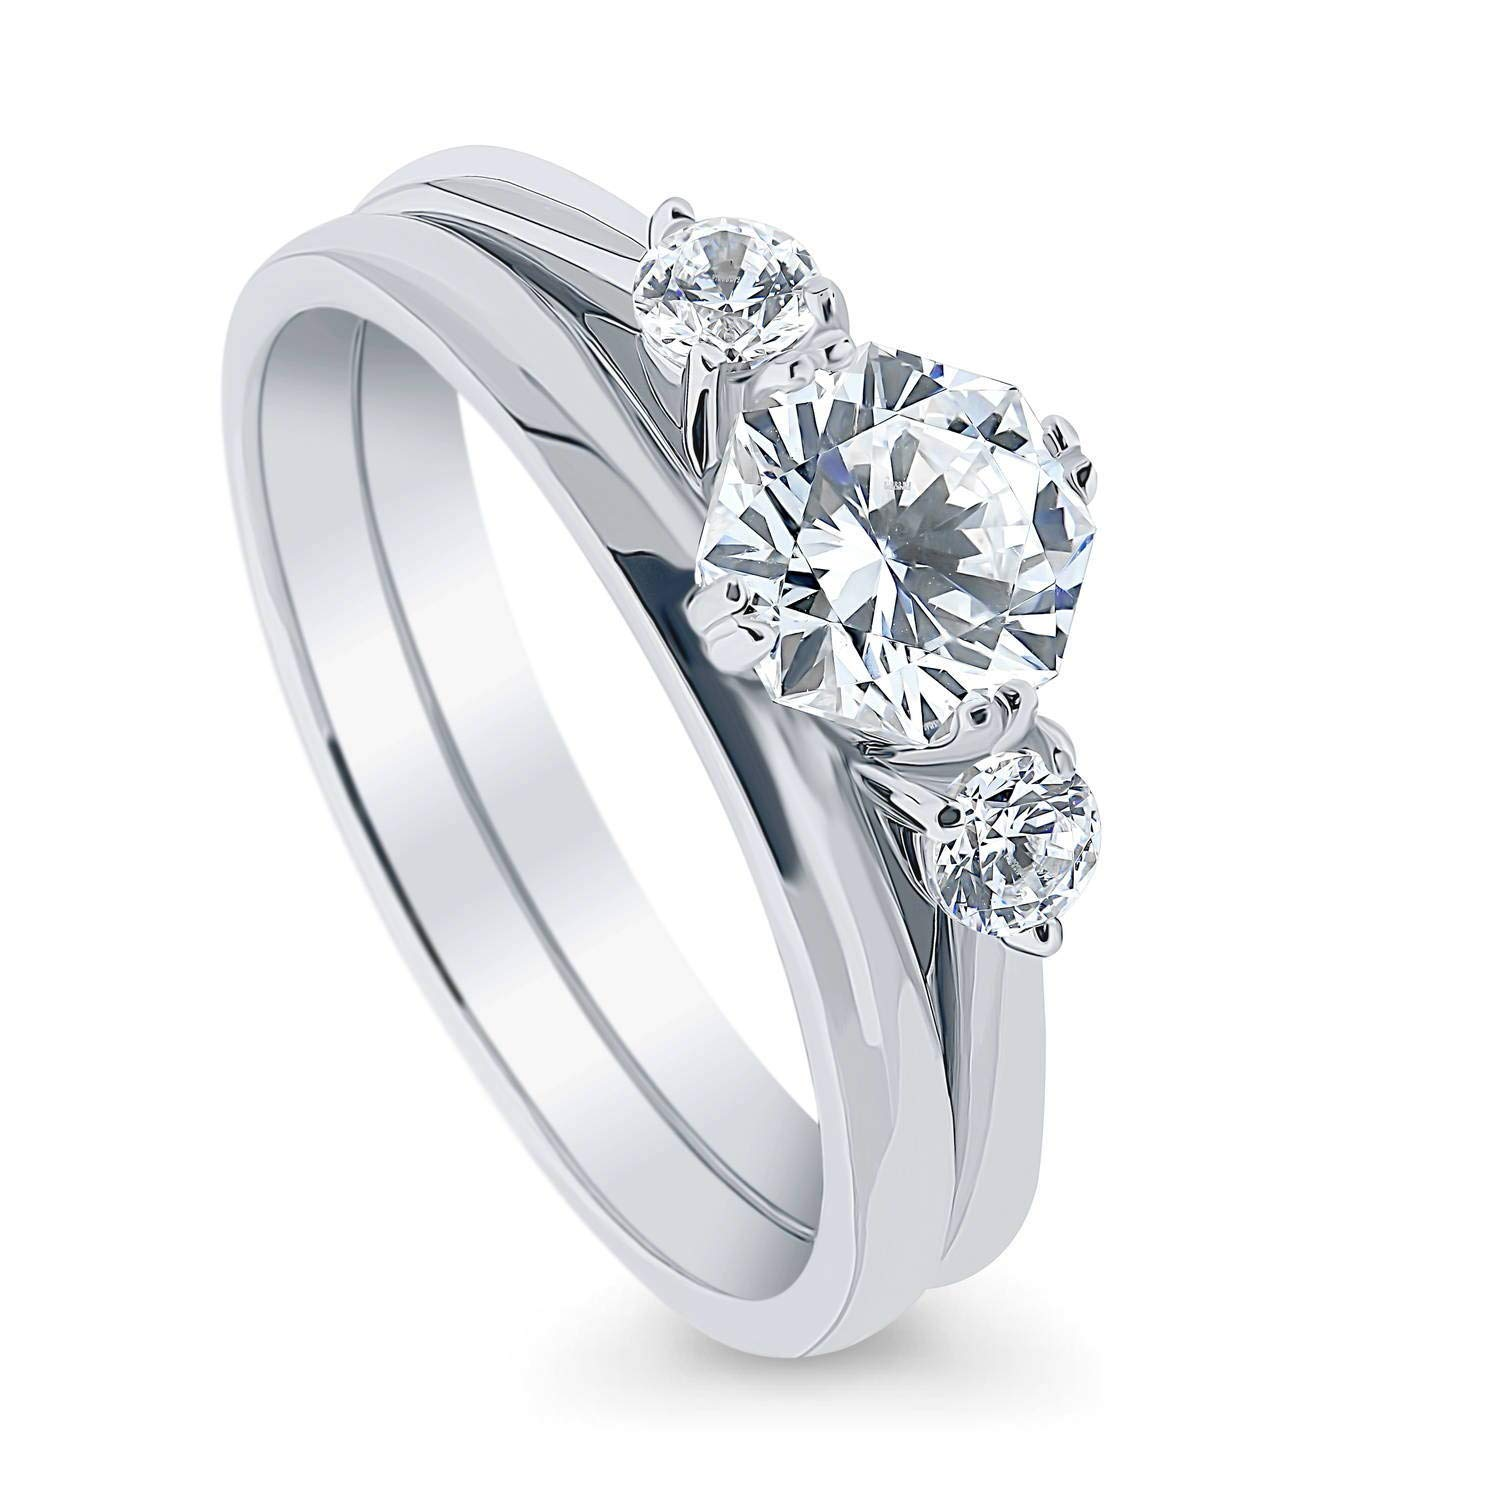 BERRICLE Rhodium Plated Sterling Silver 3-Stone Anniversary Engagement Wedding Ring Set Made with Swarovski Zirconia Octagon Sun Cut 1.47 CTW Size 7